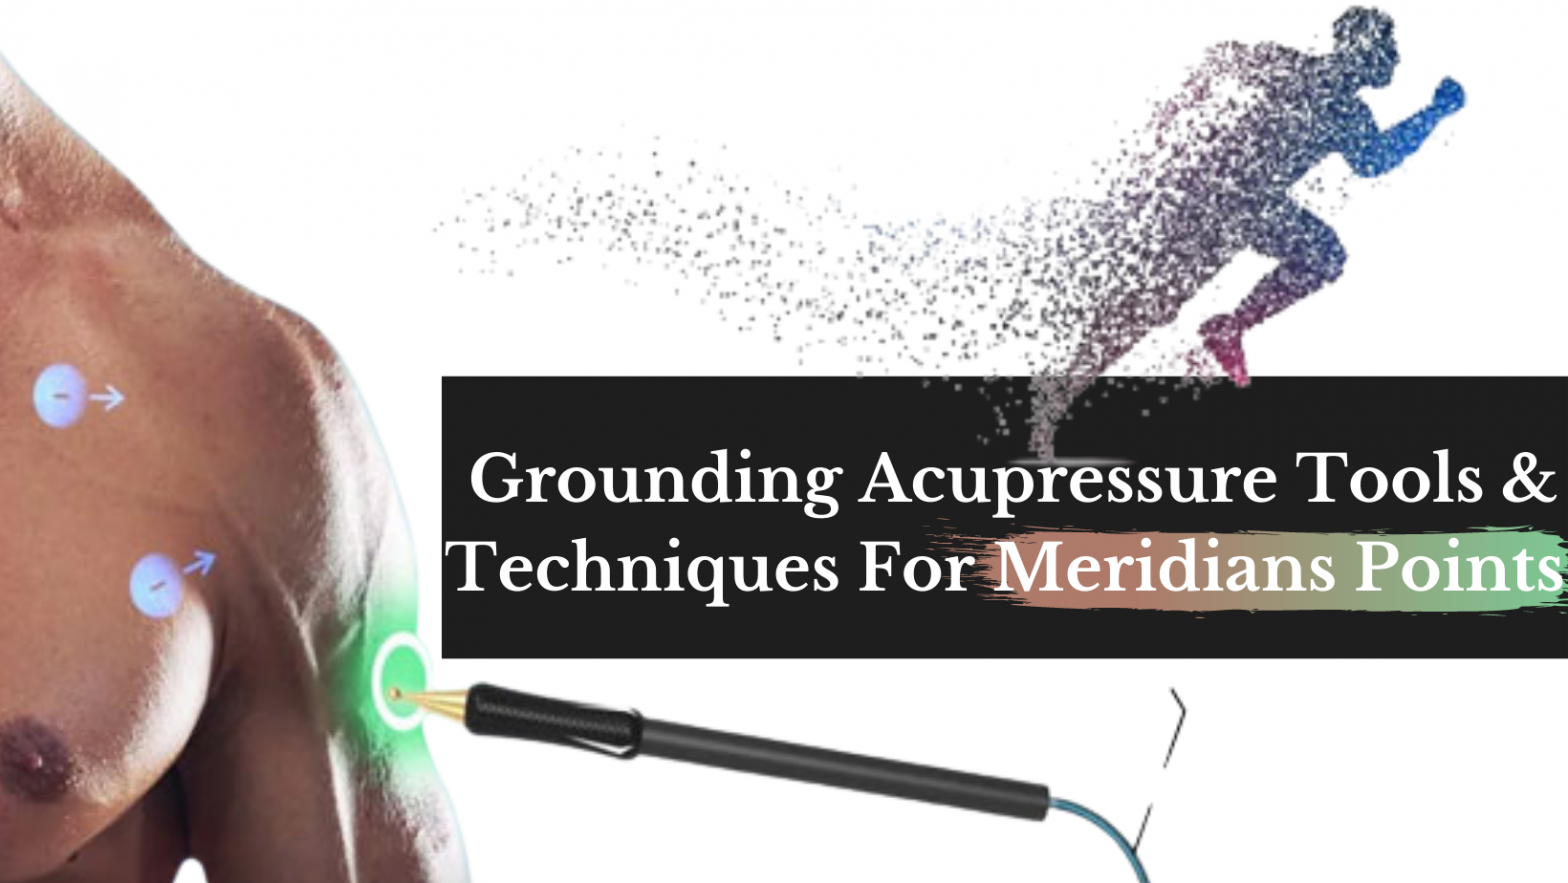 Grounding Acupressure Tools & Techniques For Meridians Points